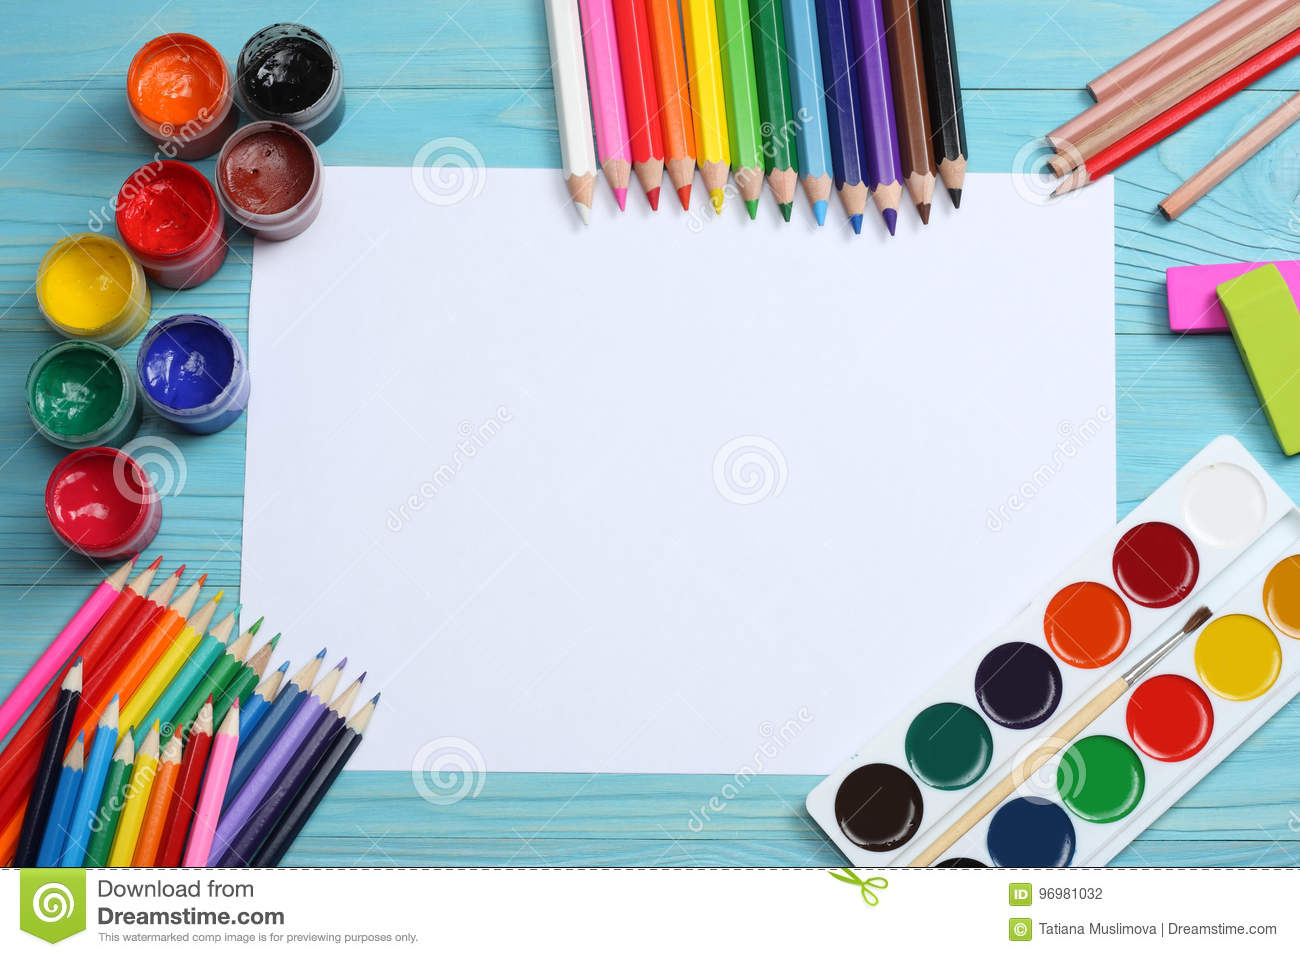 School and office supplies. school background. colored pencils, pen, pains, paper for school and student education